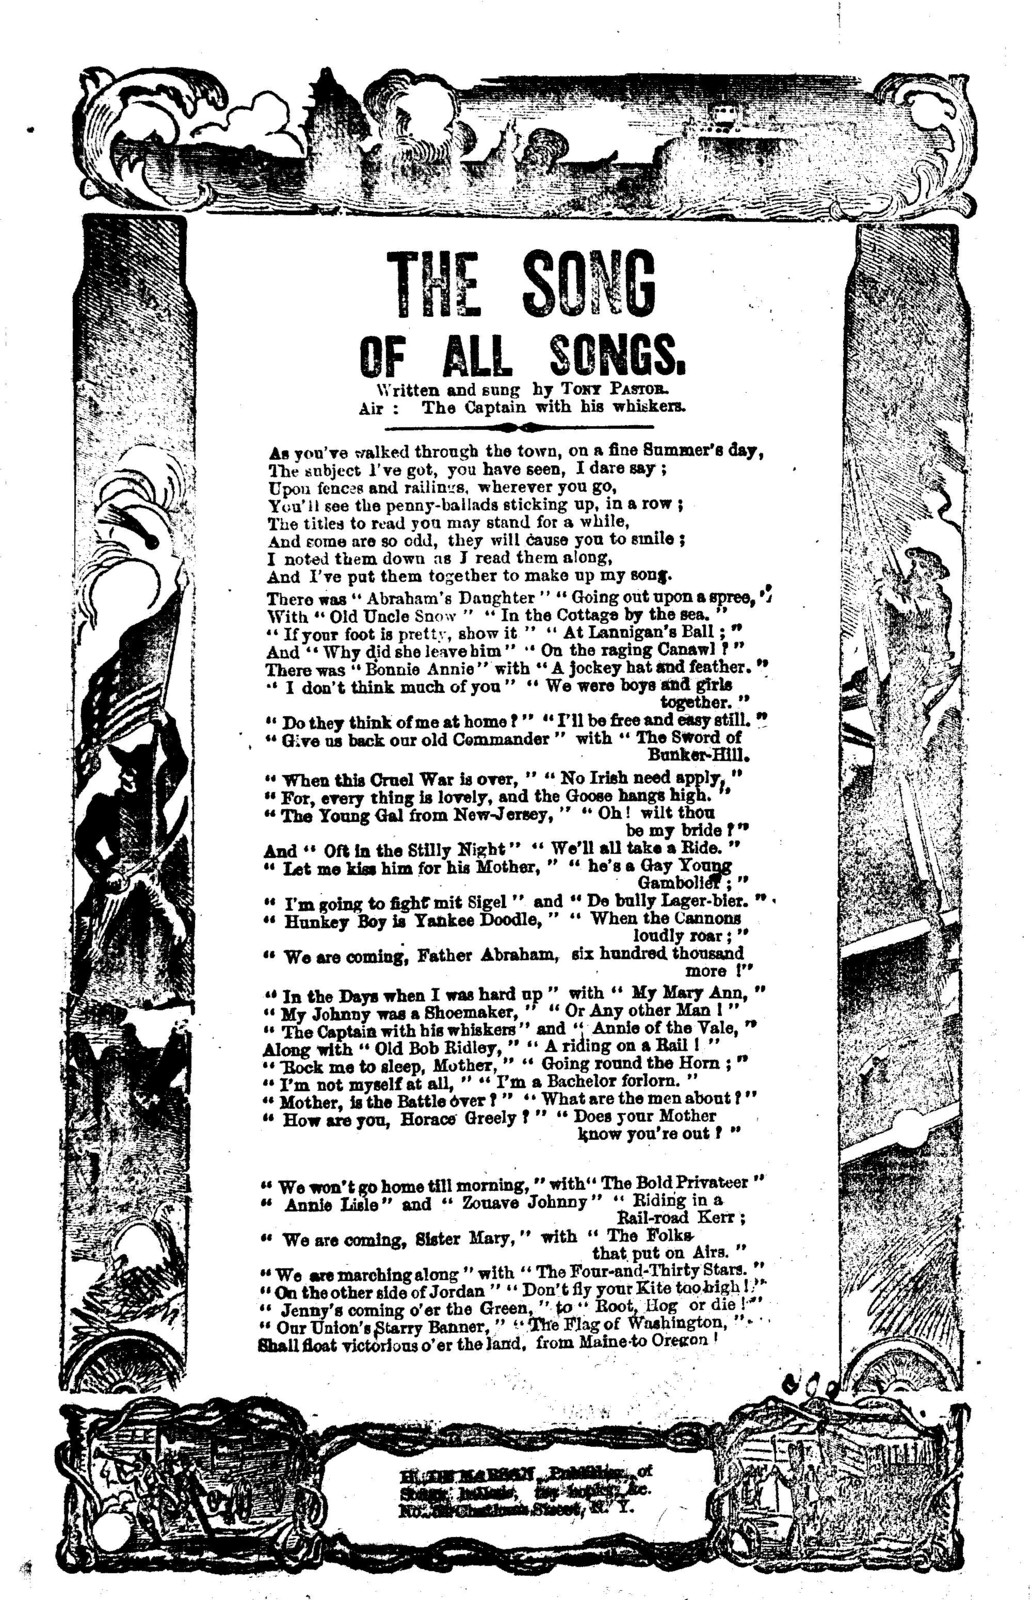 The song of all songs. Written and sung by Tony Pastor. Air: The Captain  with his whiskers. H. De Marsan, ... No. 54 Chatham Street, N. Y - Library  Of Congress Public Domain Image